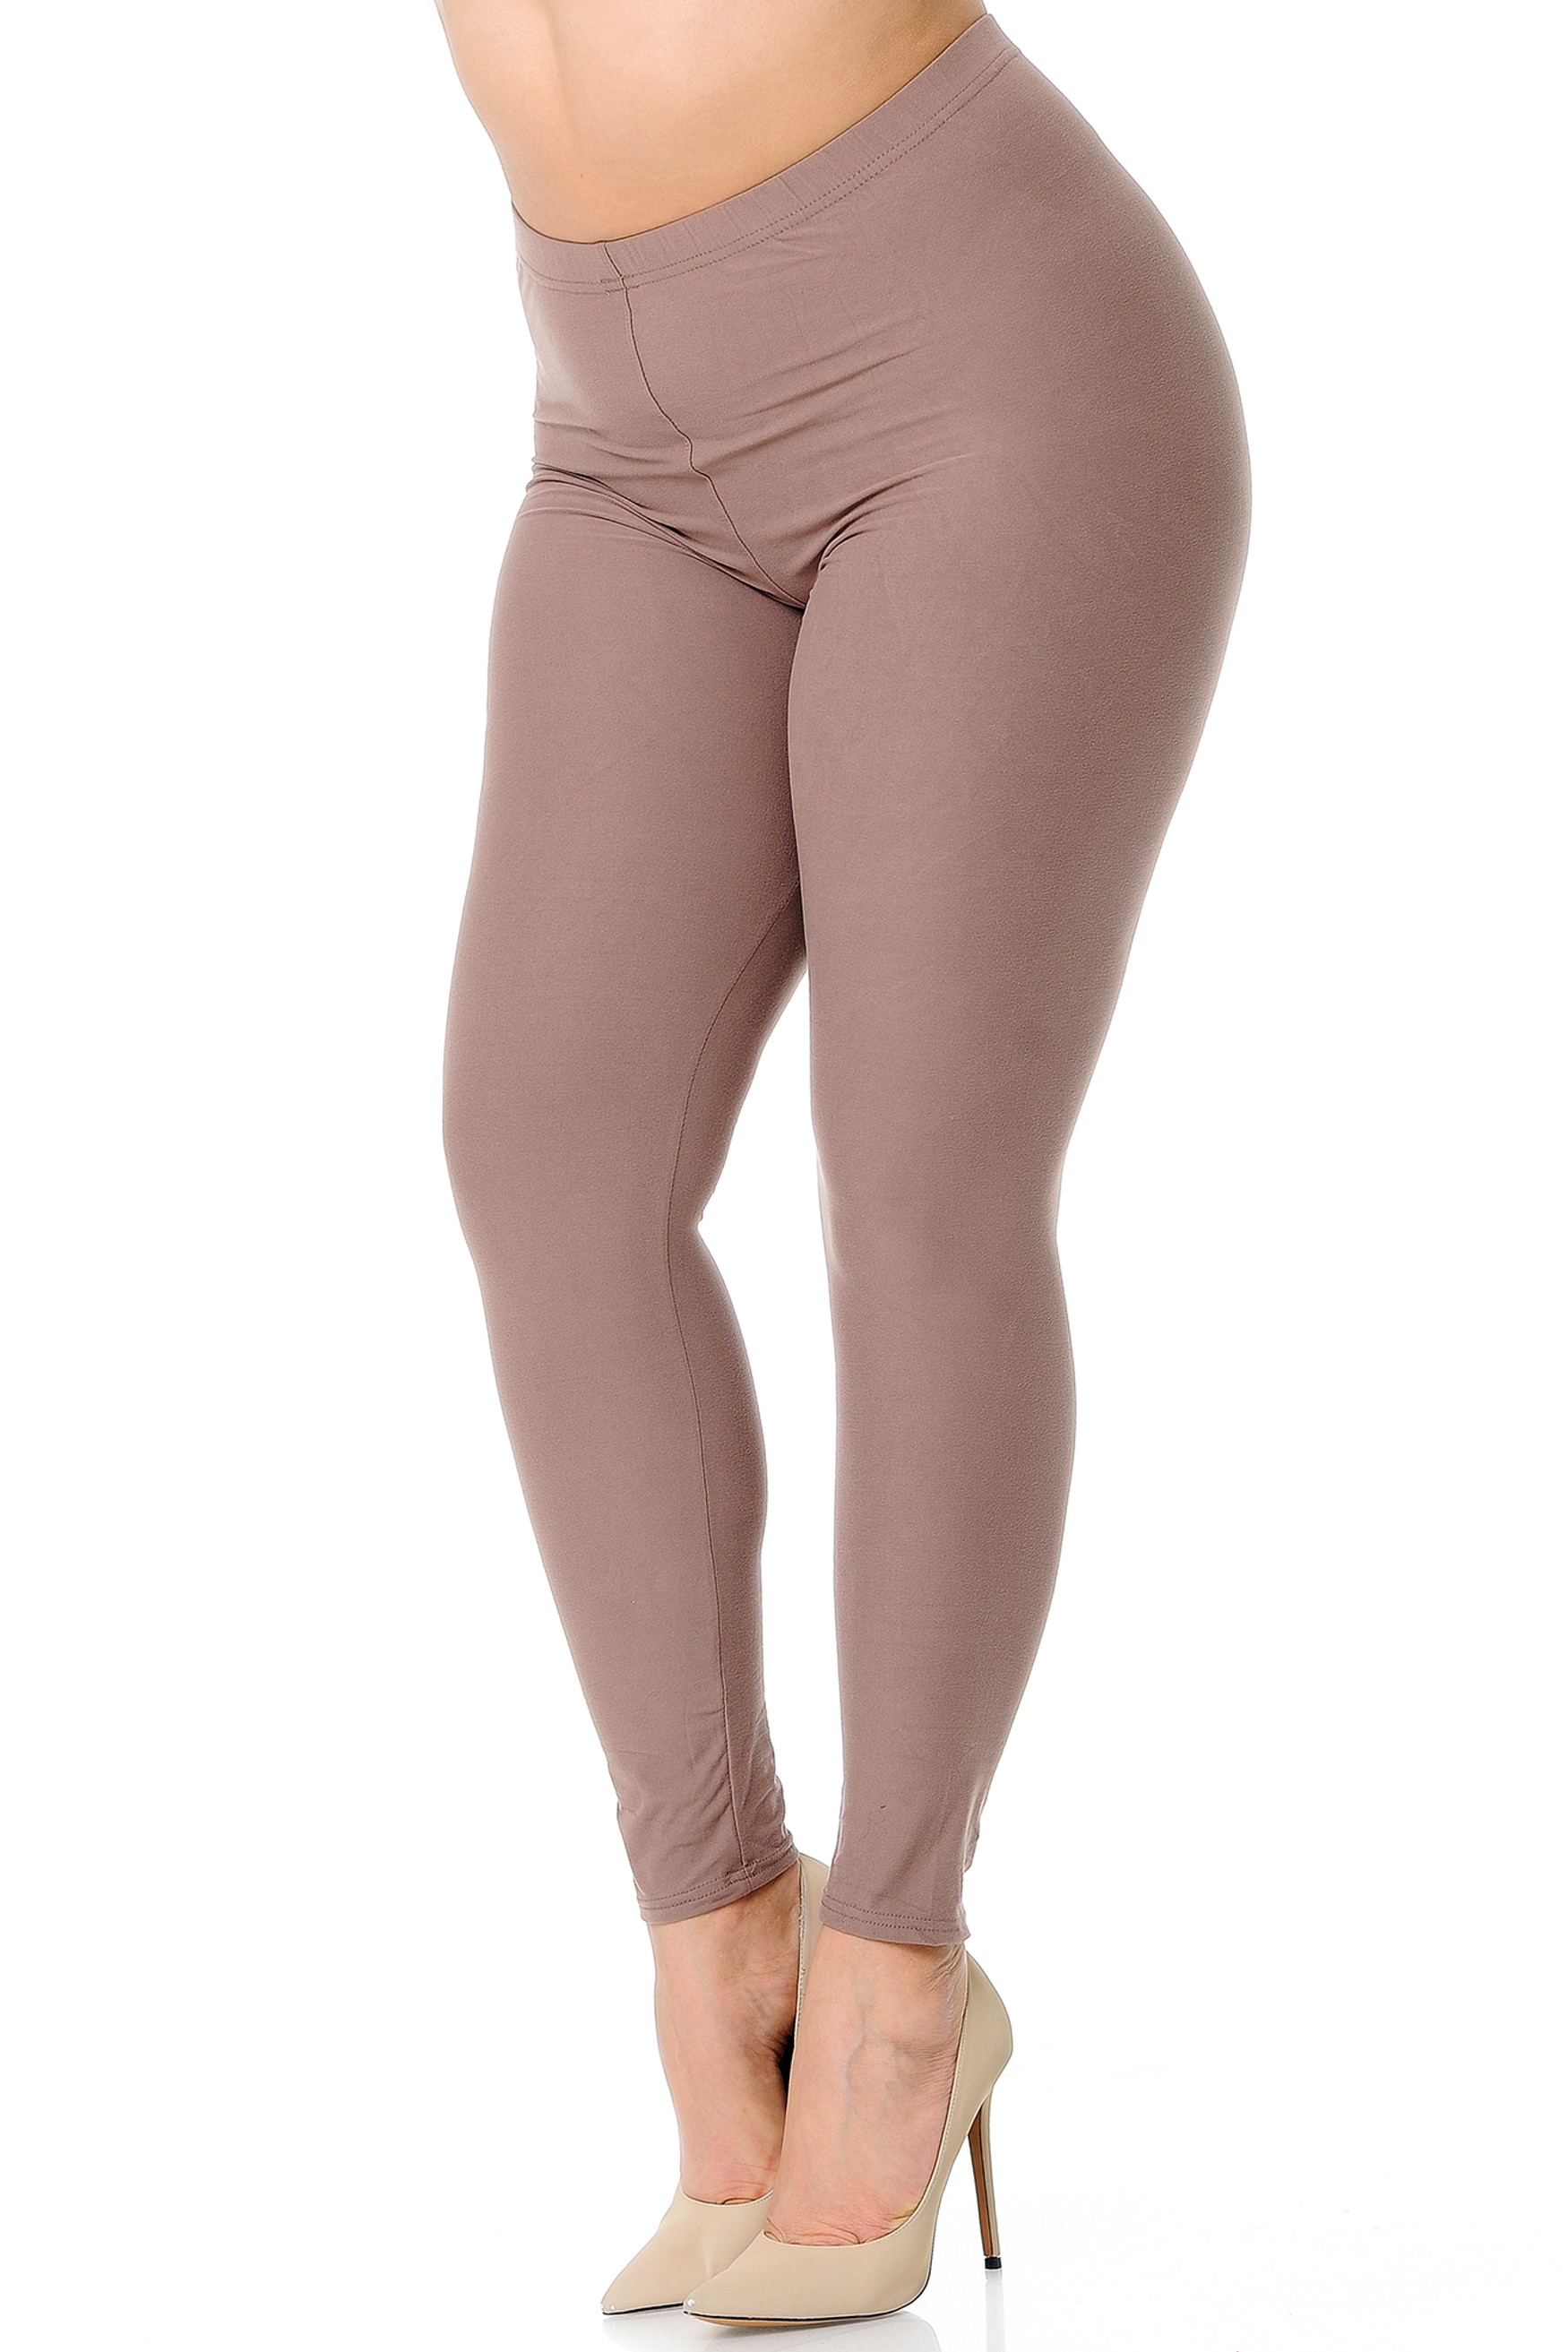 45 degree view of Mocha Buttery Soft Basic Solid Extra Plus Size Leggings - 3X-5X - New Mix